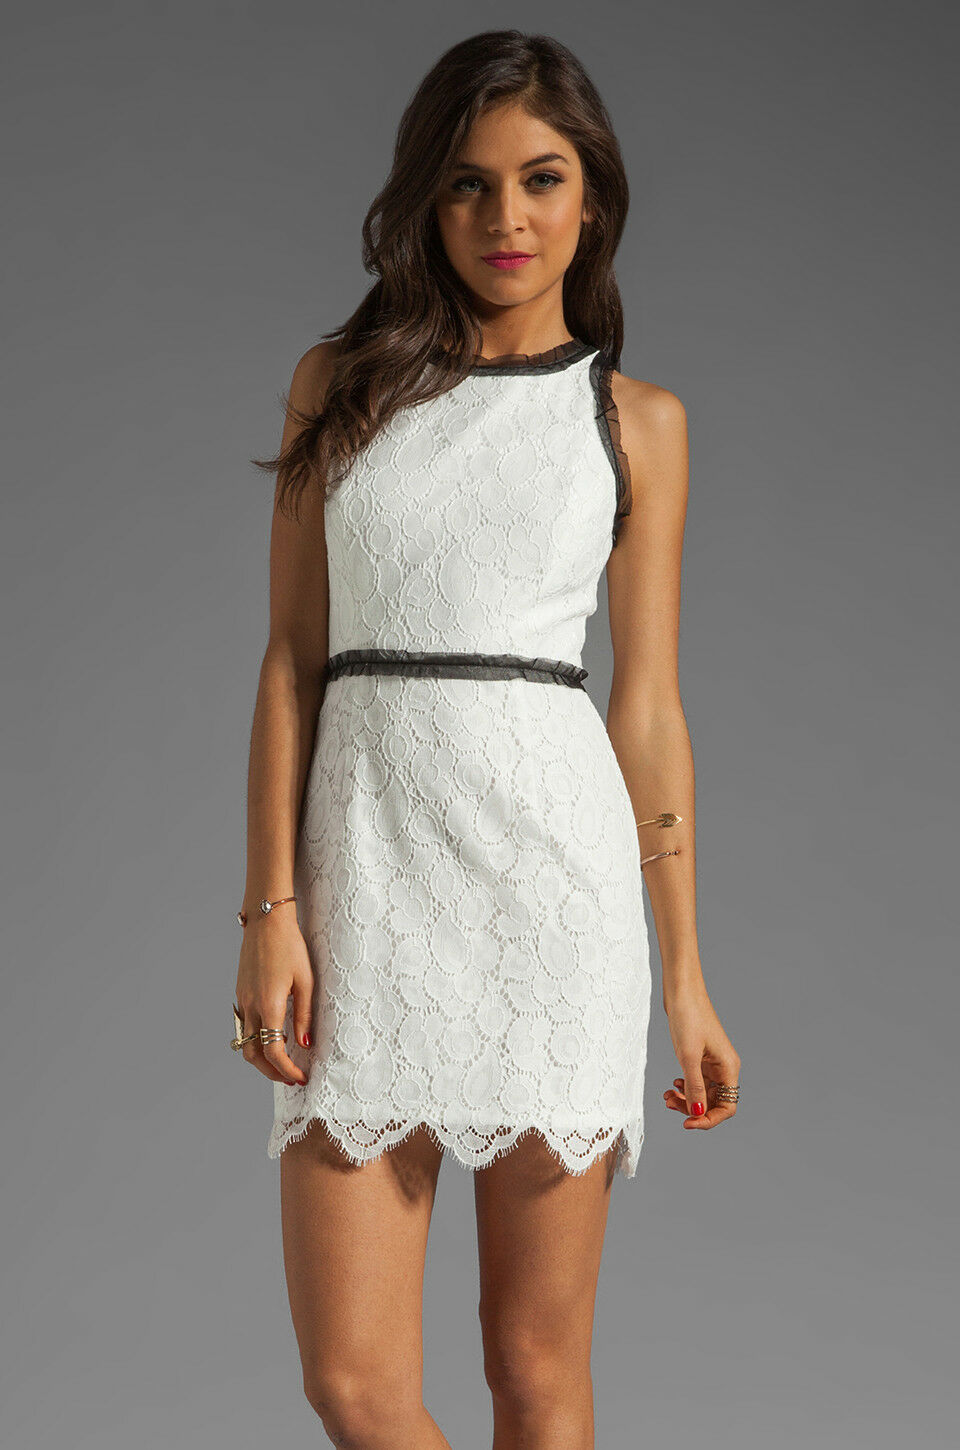 NWT Milly 'Begonia' Scallop Lace Dress - US 4, AU 8